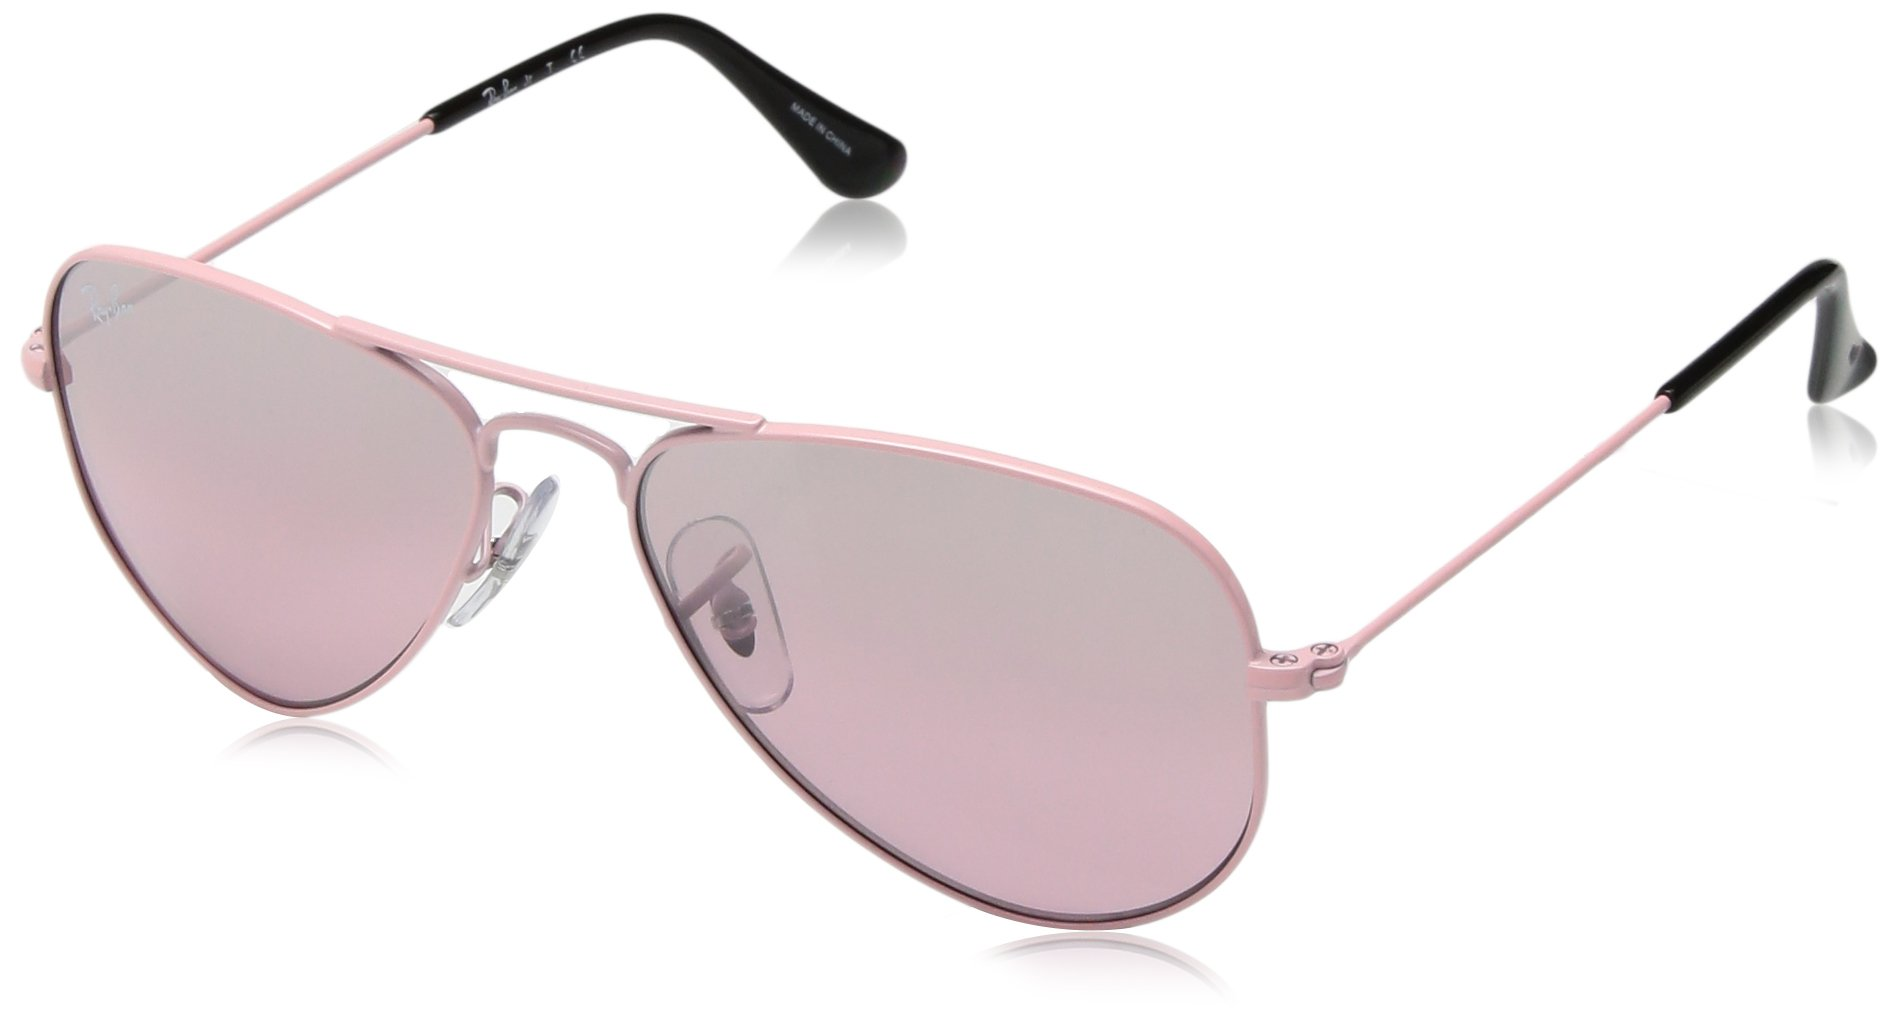 RAY-BAN JUNIOR Kids' RJ9506S Aviator Kids Sunglasses, Pink/Pink Mirror Silver Gradient, 52 mm by RAY-BAN JUNIOR